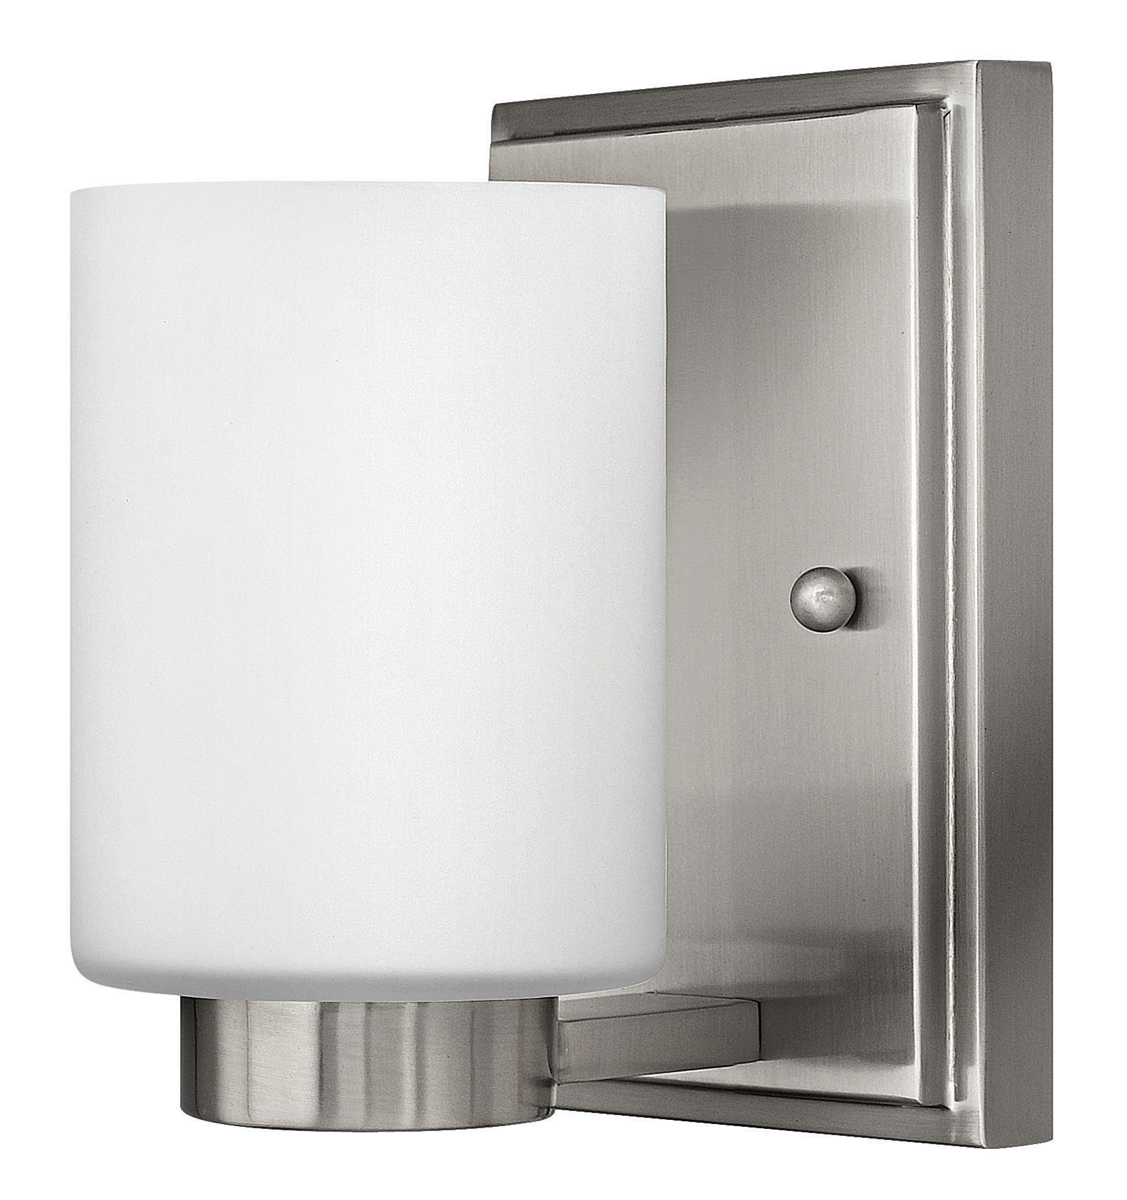 Hinkley lighting 5050bn miley single light bathroom for Hinkley bathroom vanity lighting